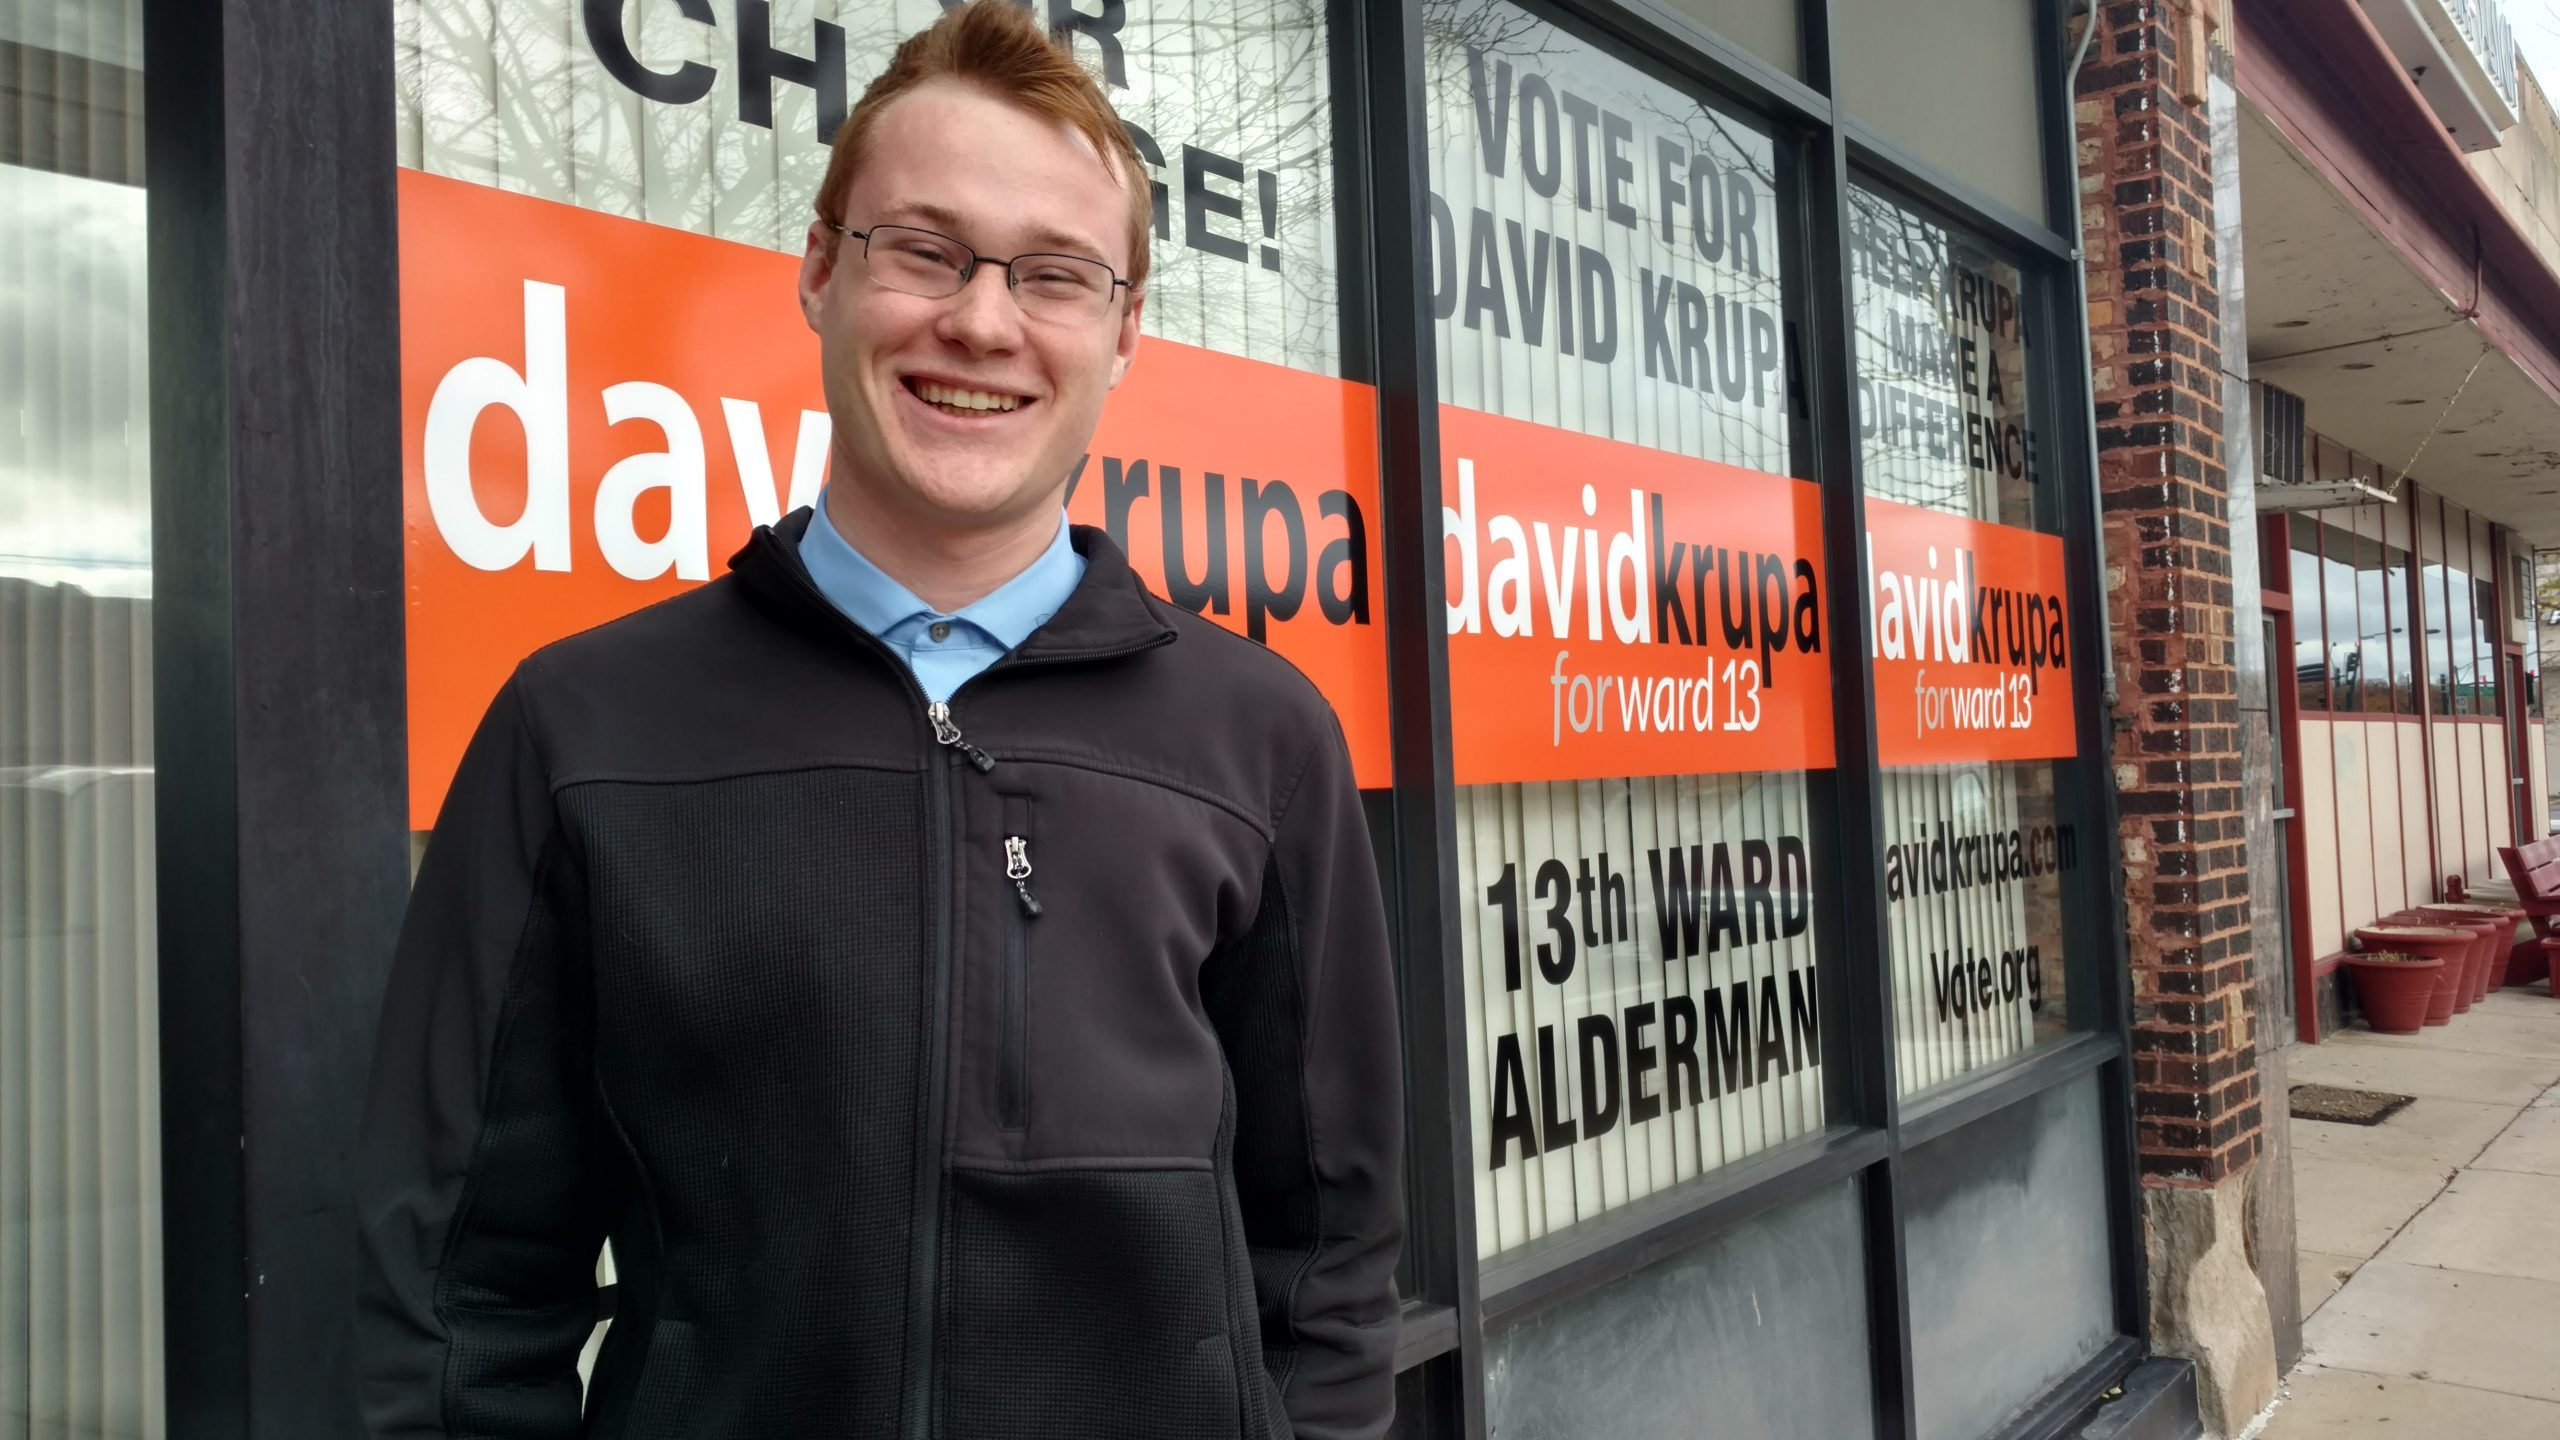 Just two years ago 19-year-old David Krupa was stumping for Trump. Now he's running for alderman as an independent